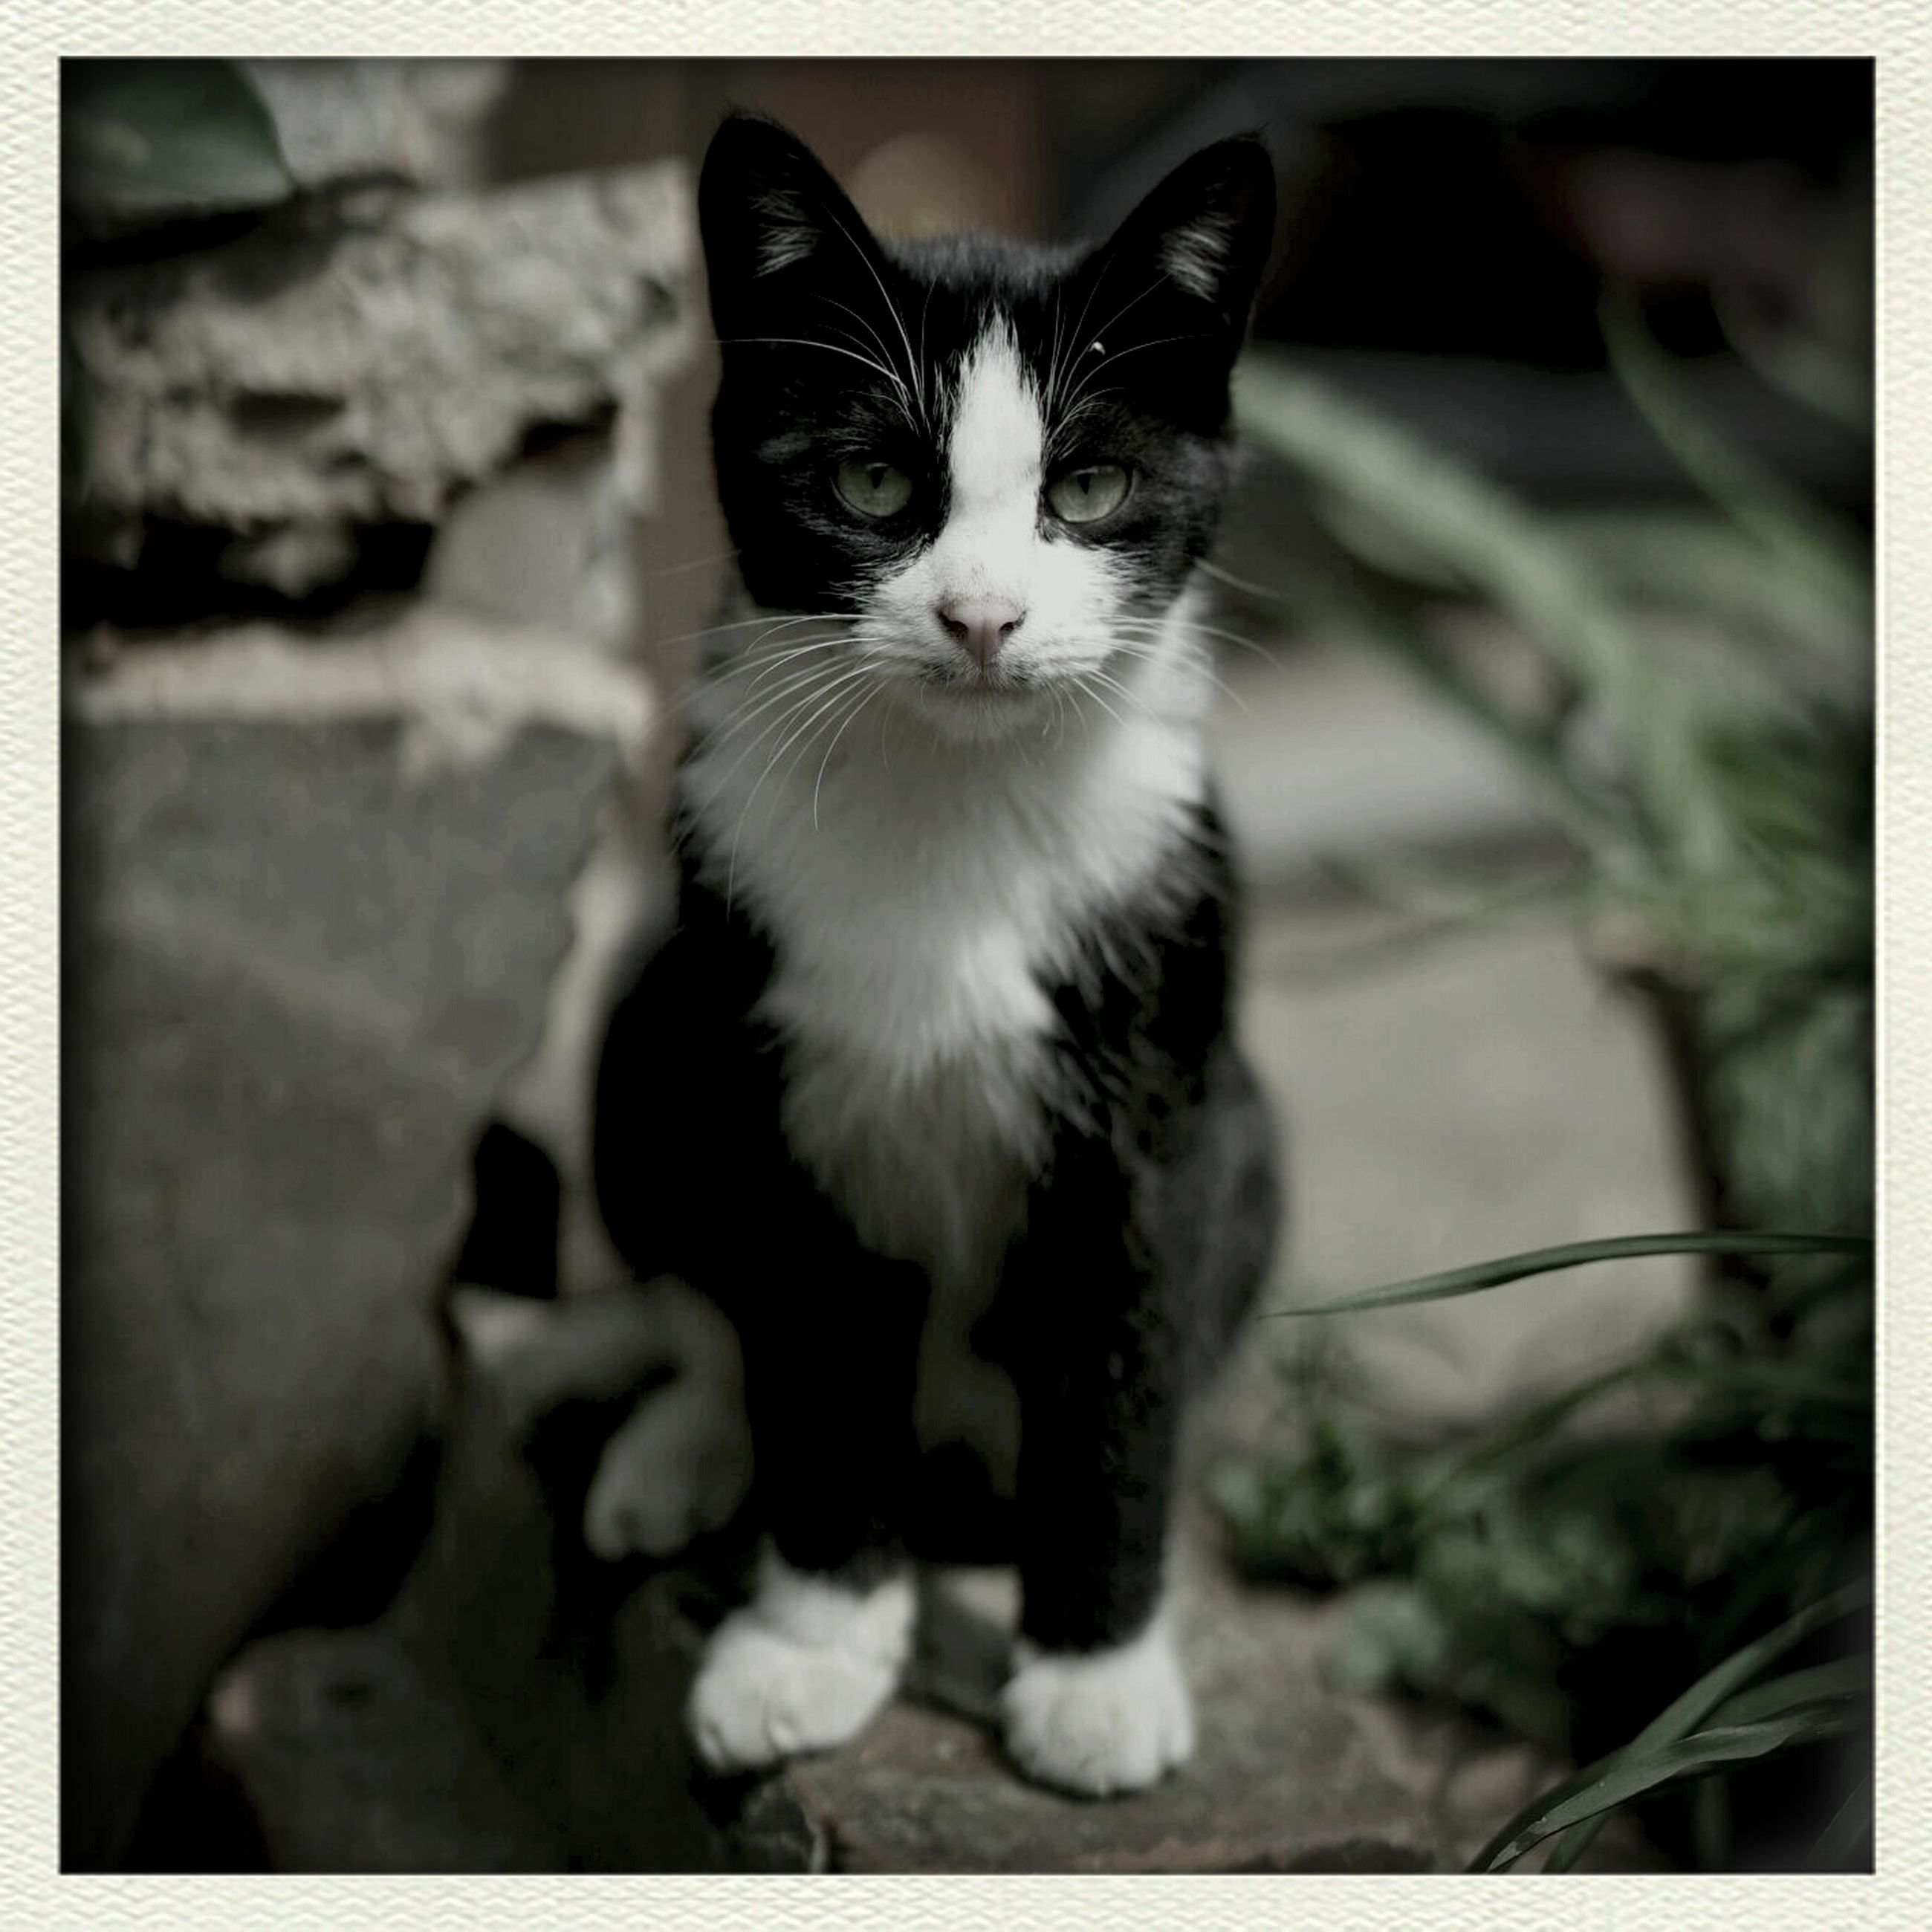 transfer print, domestic cat, animal themes, one animal, pets, cat, domestic animals, feline, auto post production filter, portrait, looking at camera, mammal, sitting, whisker, focus on foreground, close-up, front view, full length, alertness, white color